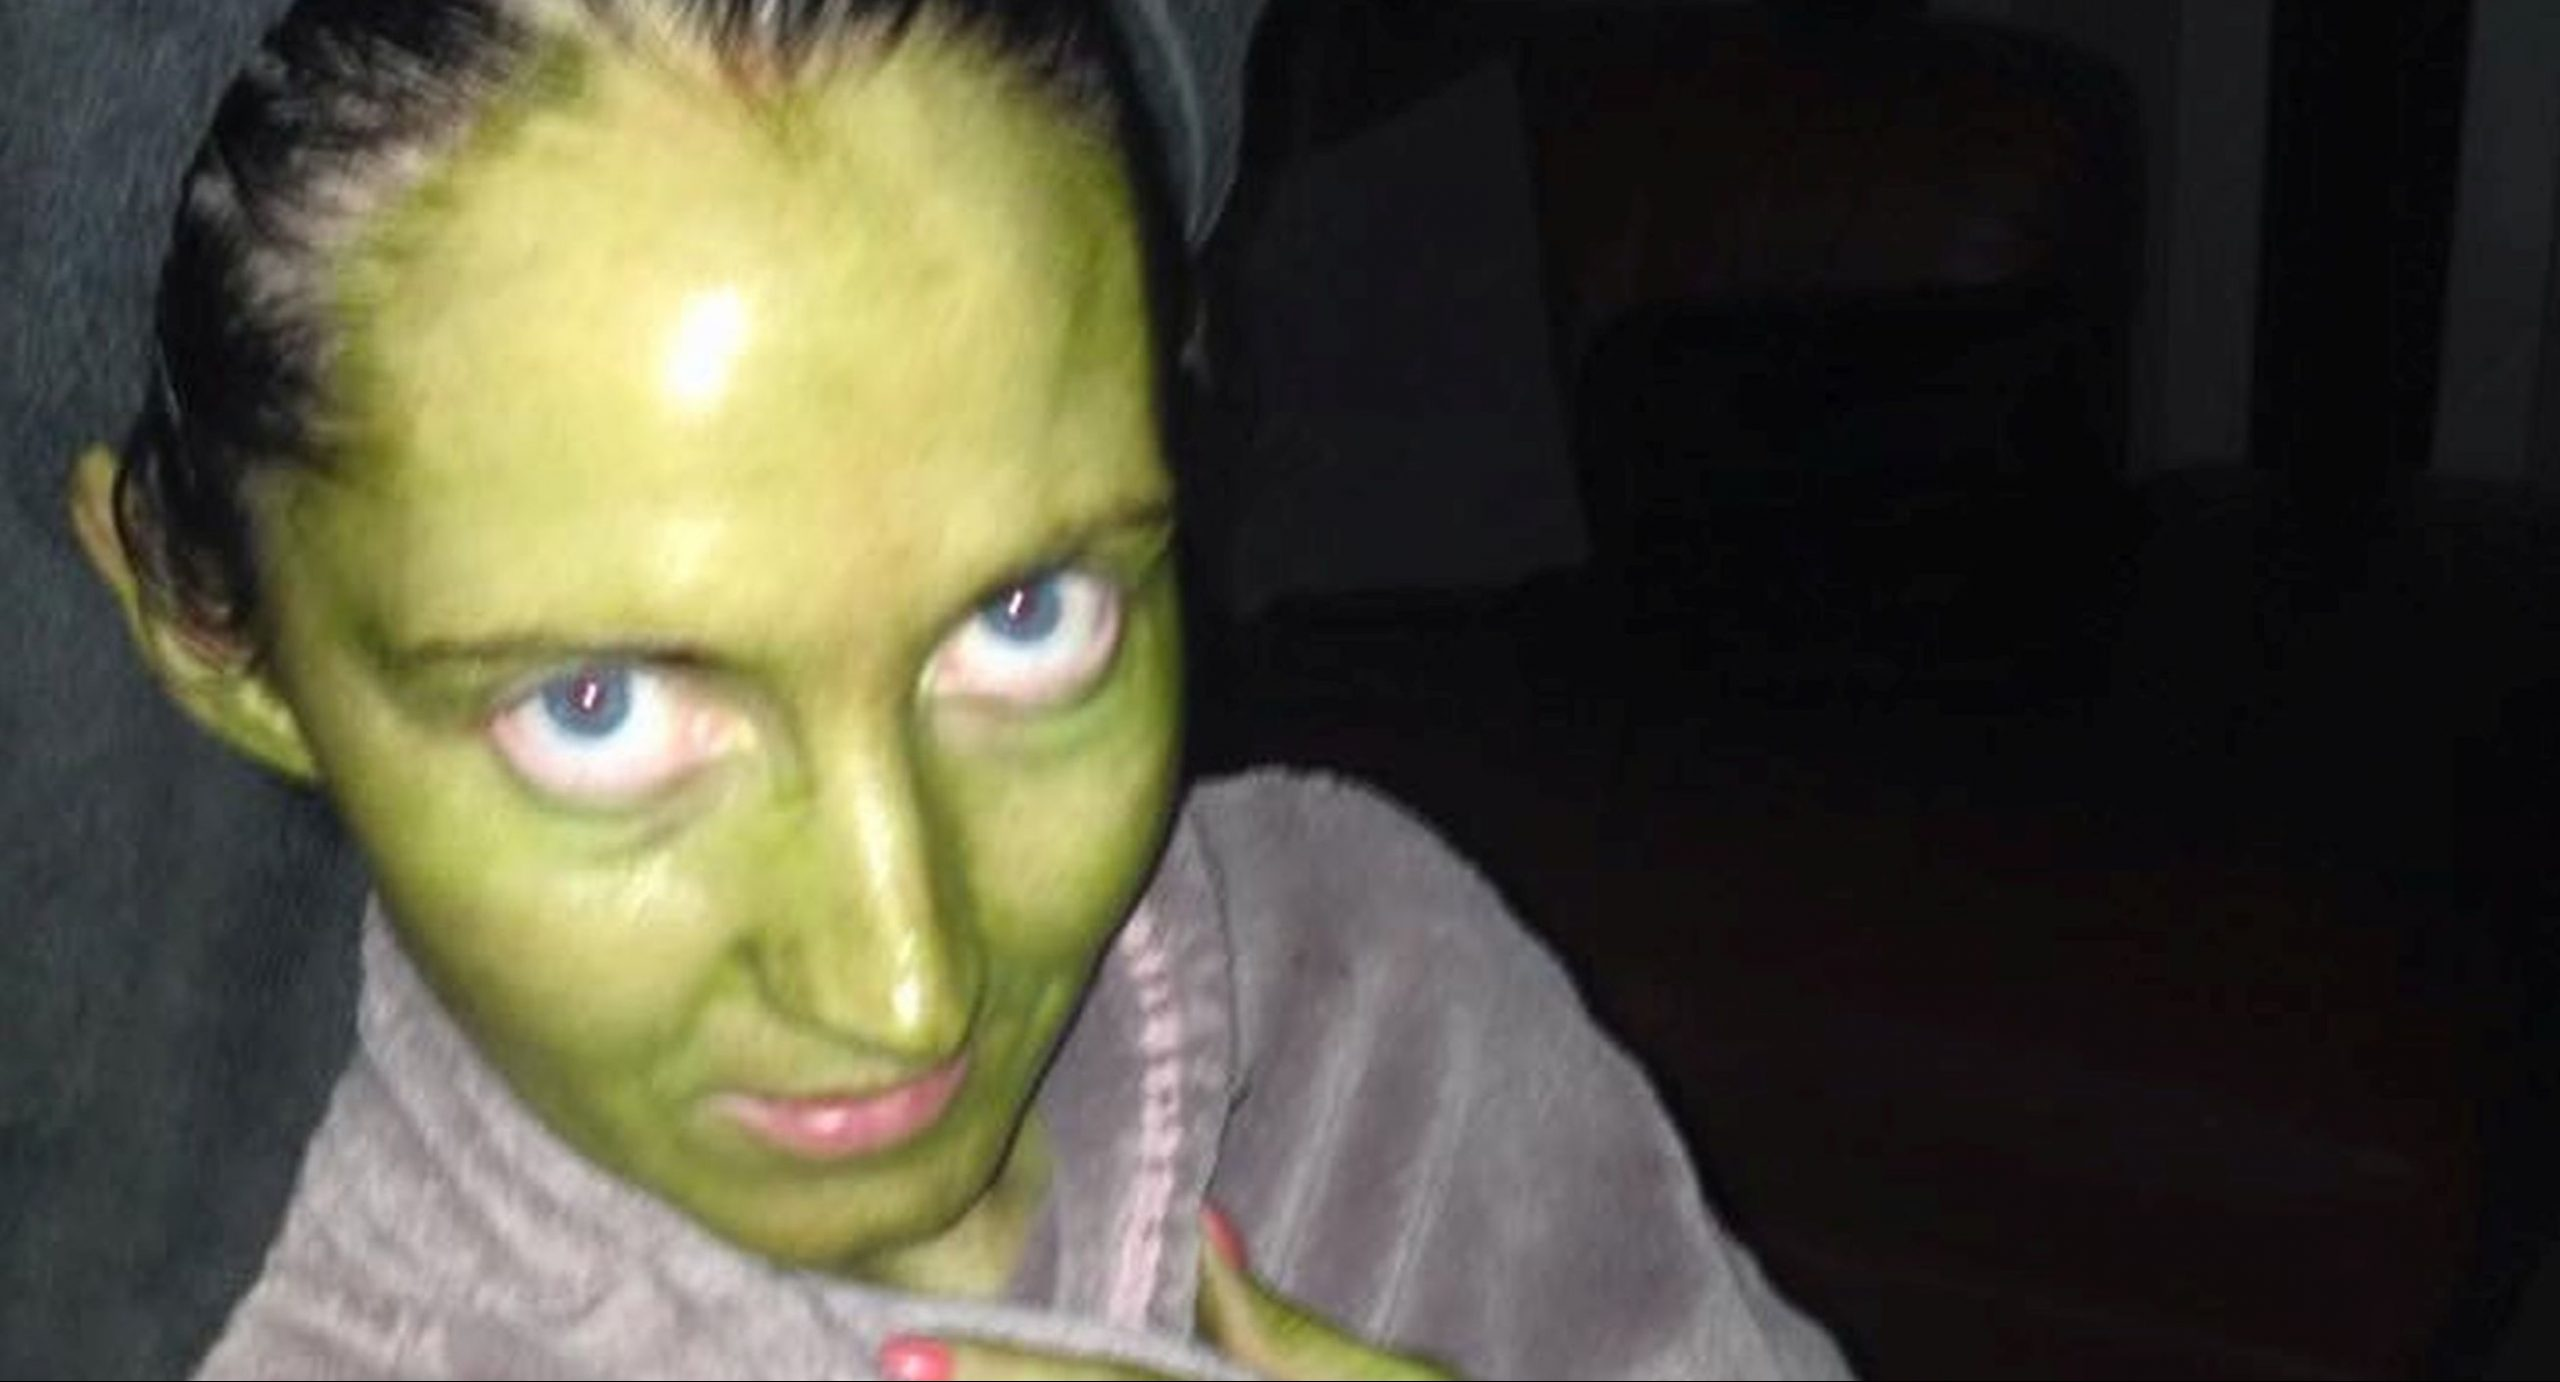 Mum turns bright green as fake tan disaster leaves her looking like the 'Wicked Witch of the West'